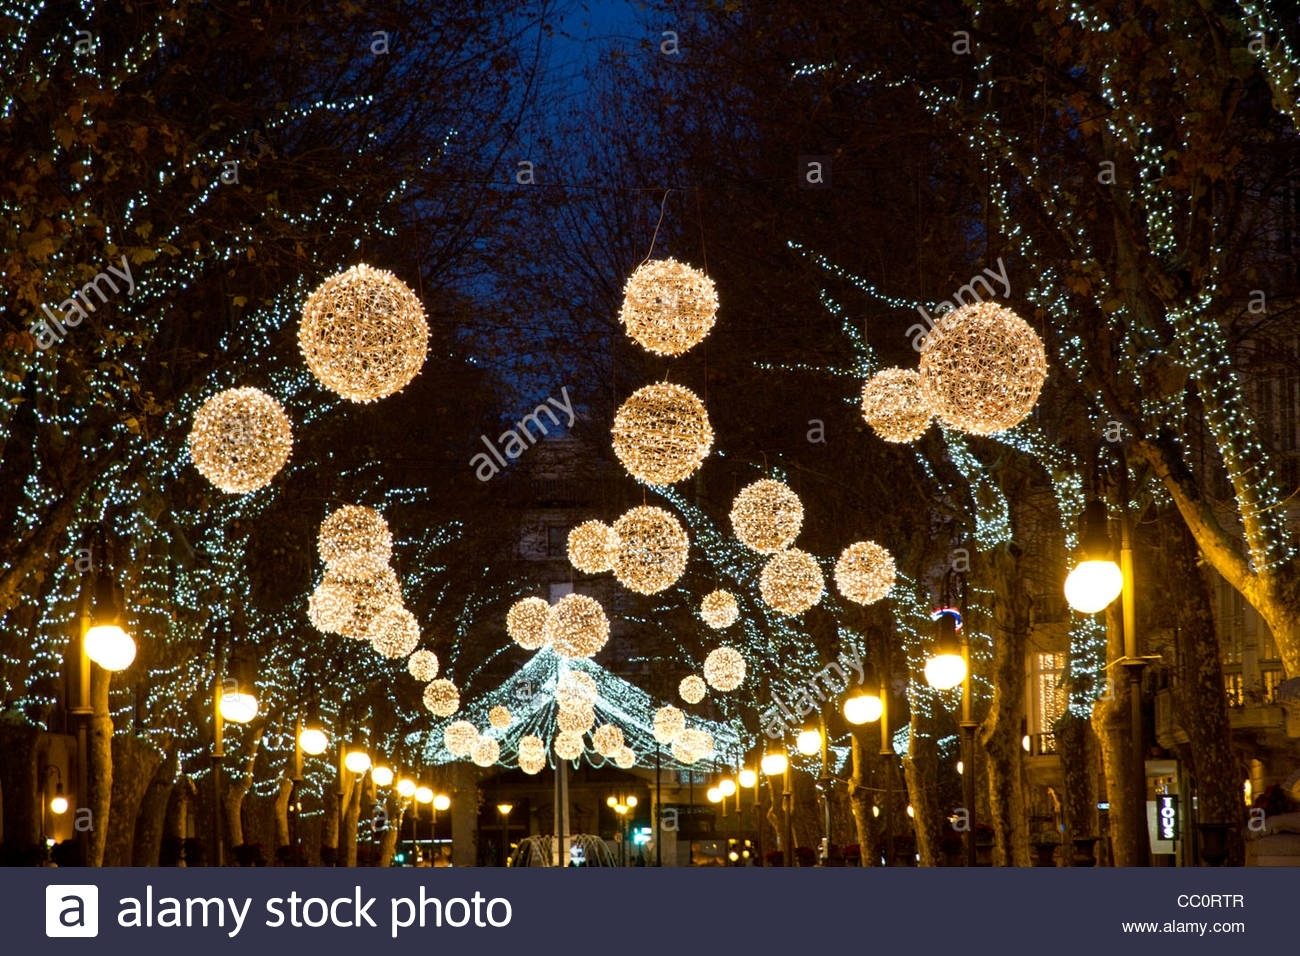 Diy : Christmas Light Balls For Sale Burlington Ncchristmas Full With Regard To Outdoor Hanging Light Balls (View 11 of 15)